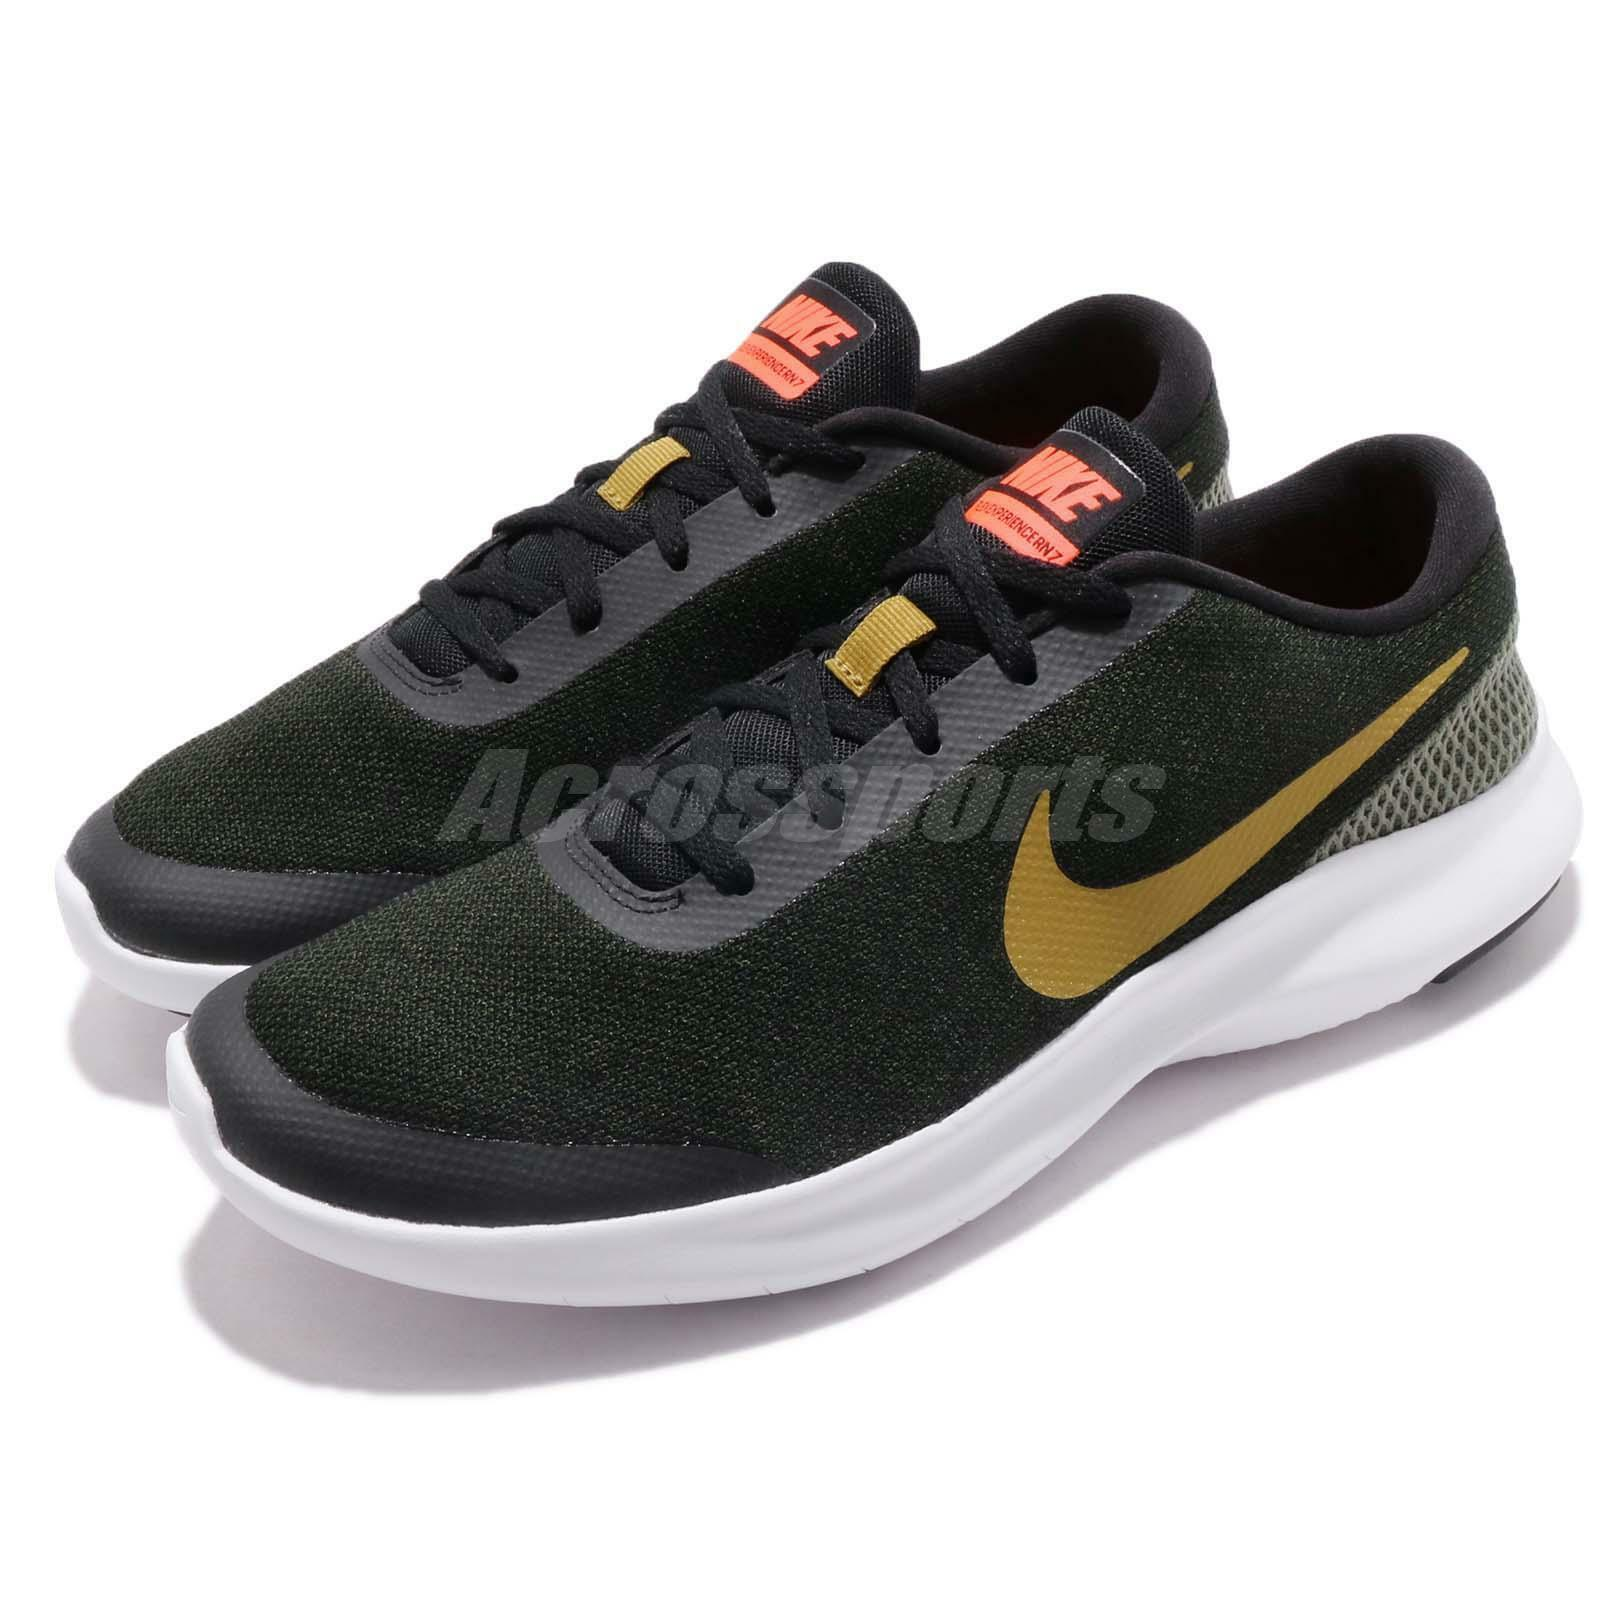 Nike Flex Experience RN 7 Black Peat Moss Olive Men Running shoes 908985-015